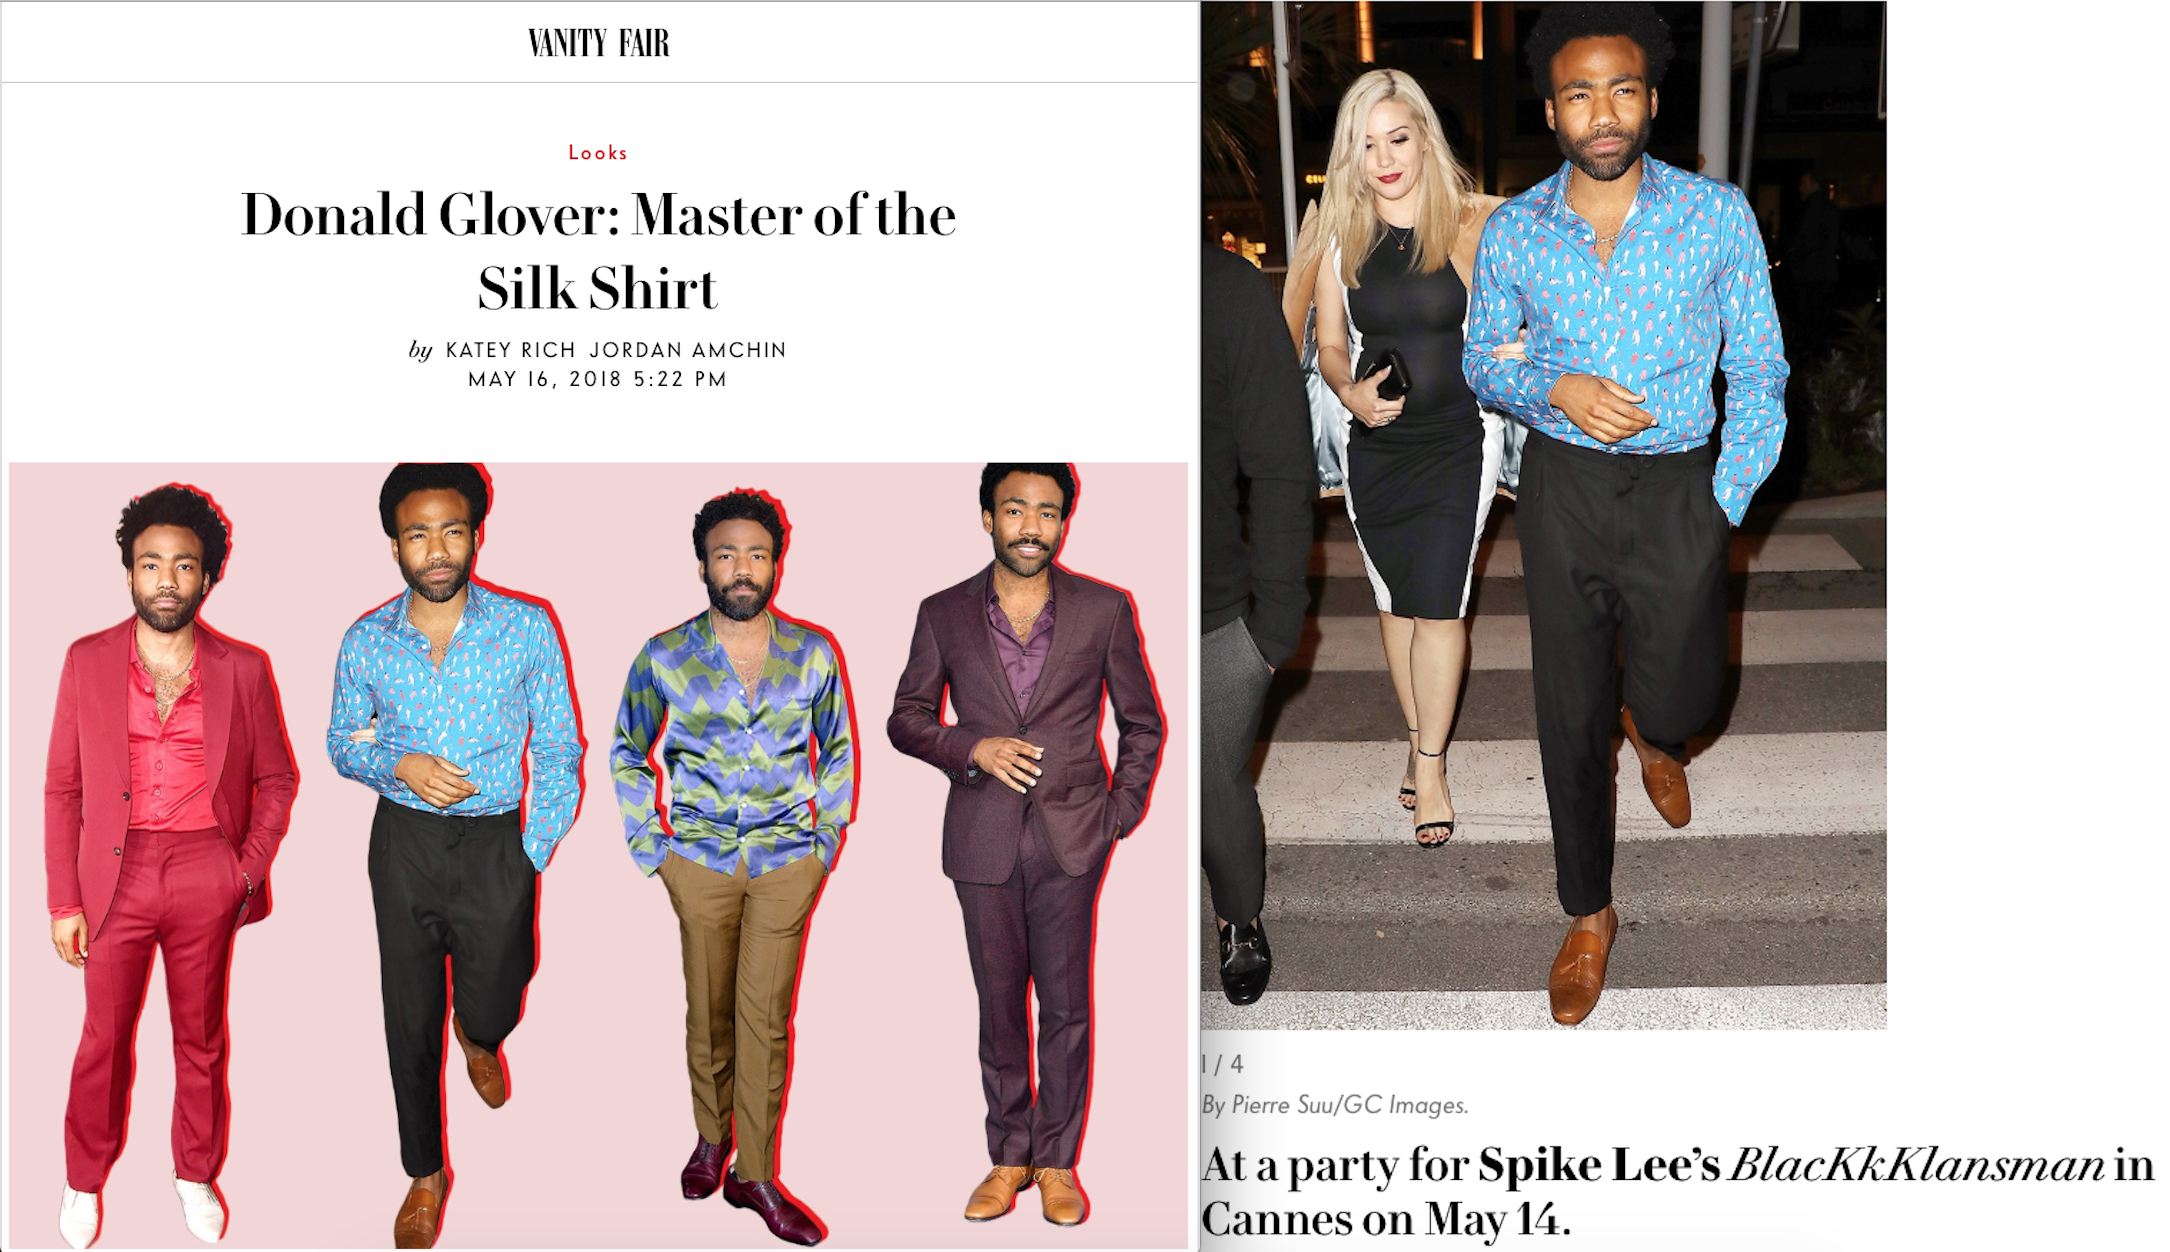 Vanity Fair Features Donald Glover Wearing Mark Chris